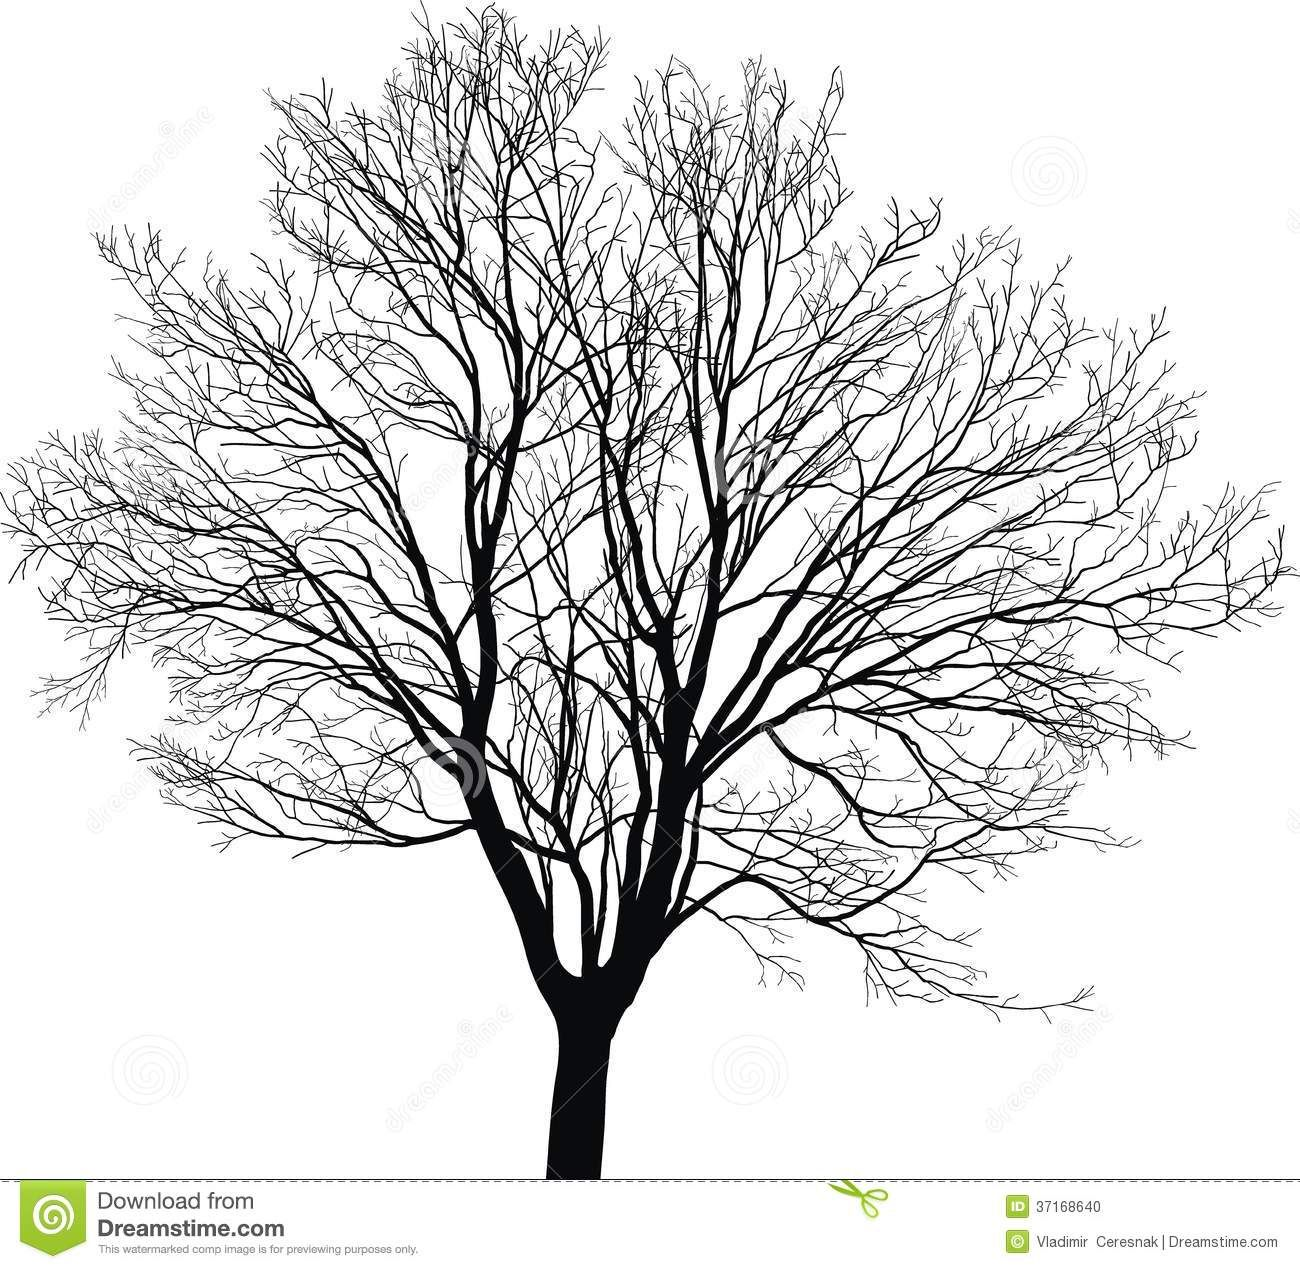 black and white drawings of trees - Google Search